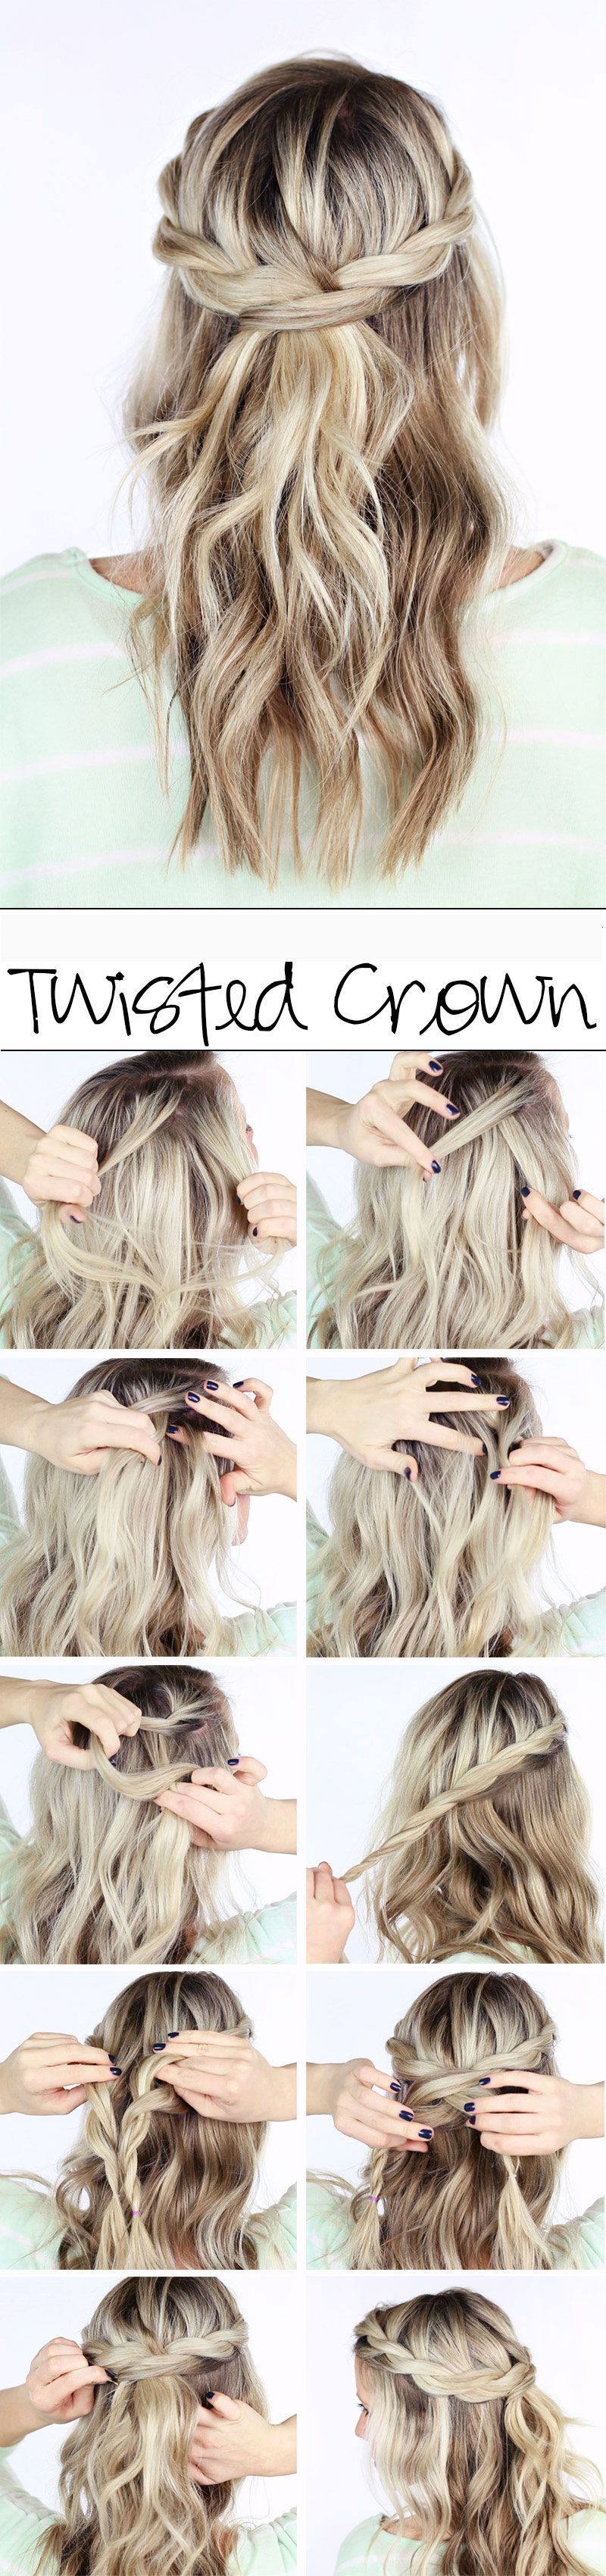 Best DIY Wedding Hairstyles with Tutorials   Tape in Hair Extensions ...